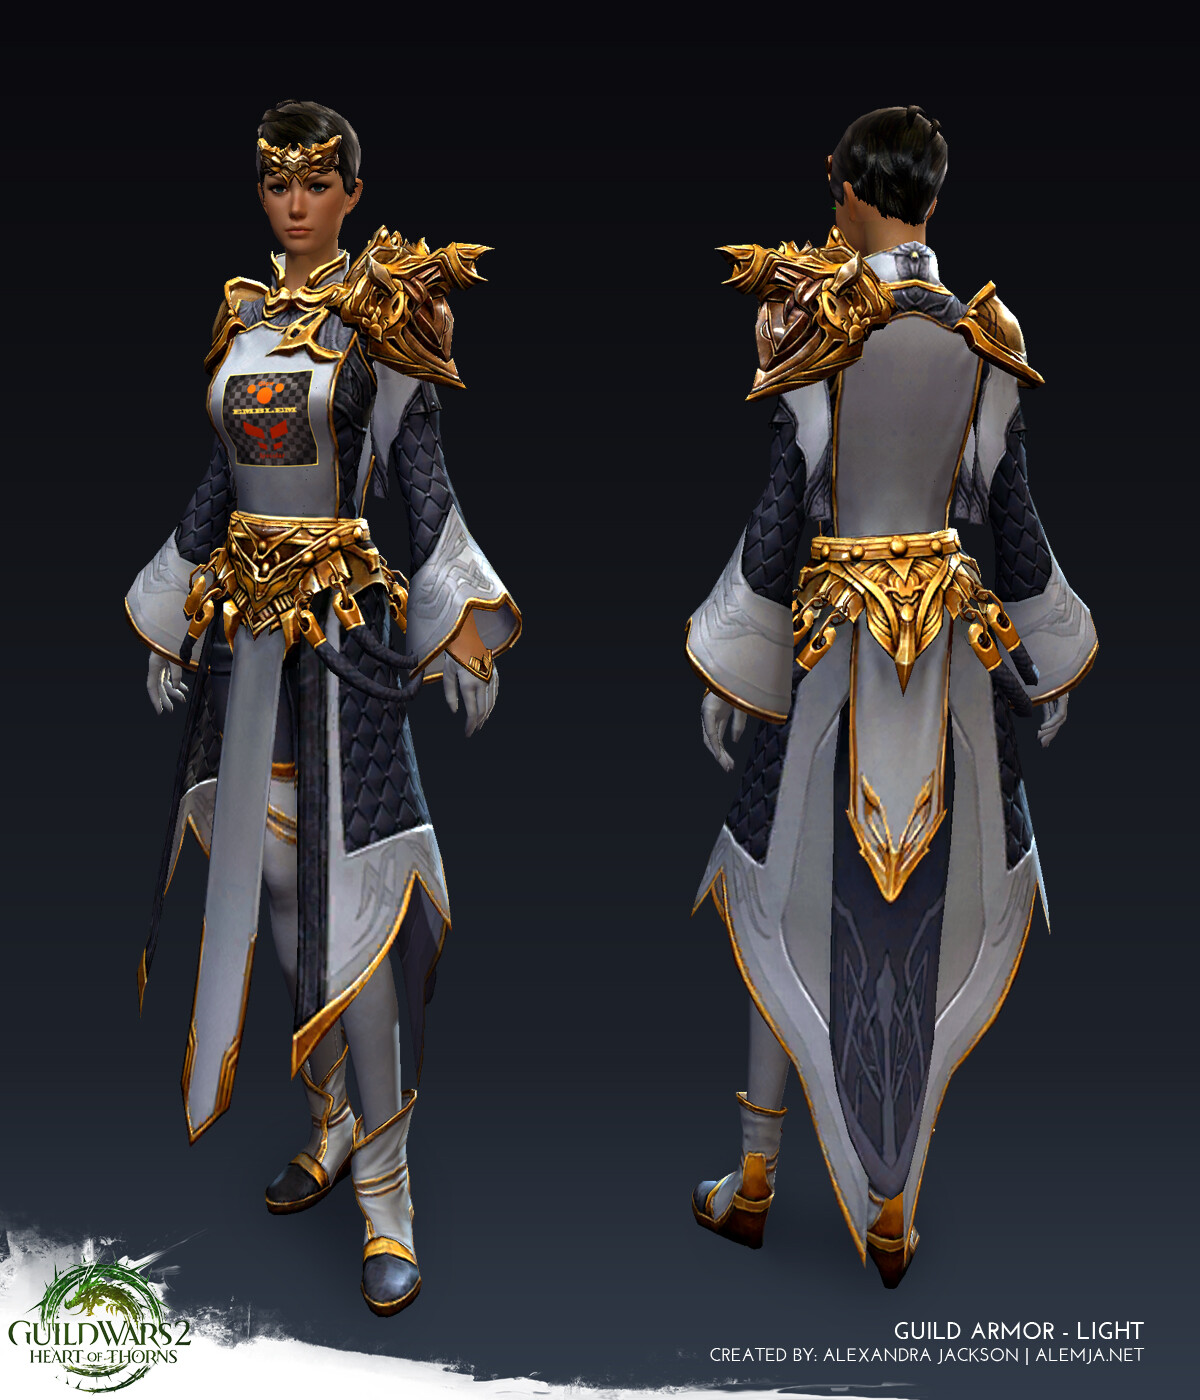 Worked on the armor game ready model and texures. This set was for Guild Wars 2 Heart of Thorns